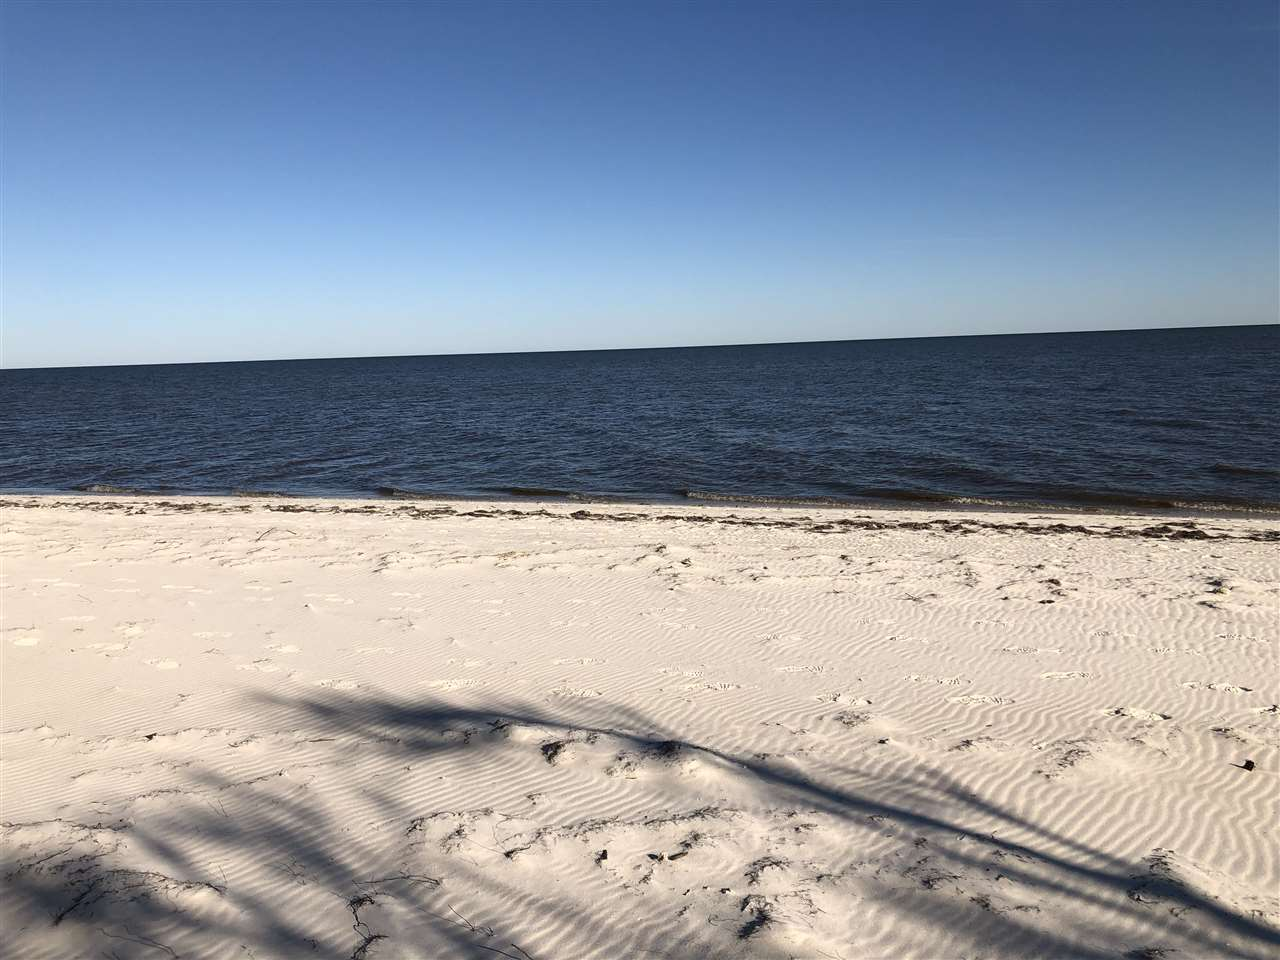 Lot dimensions are estimated.  Must be verified.   1.137 acres. Silence is golden.  All that could be heard the day of photos was the water lapping the sand.  Any view of the Gulf of Mexico is wonderful, but this is breathtaking.  White beach fronts buildable lot.  Backs up to Bald Point Stated Park.  Walking and biking trails.  The only footprints on the beach were mine. Nicely elevated.  Perfect for shelling and wading.  It's perfect no matter what the season.